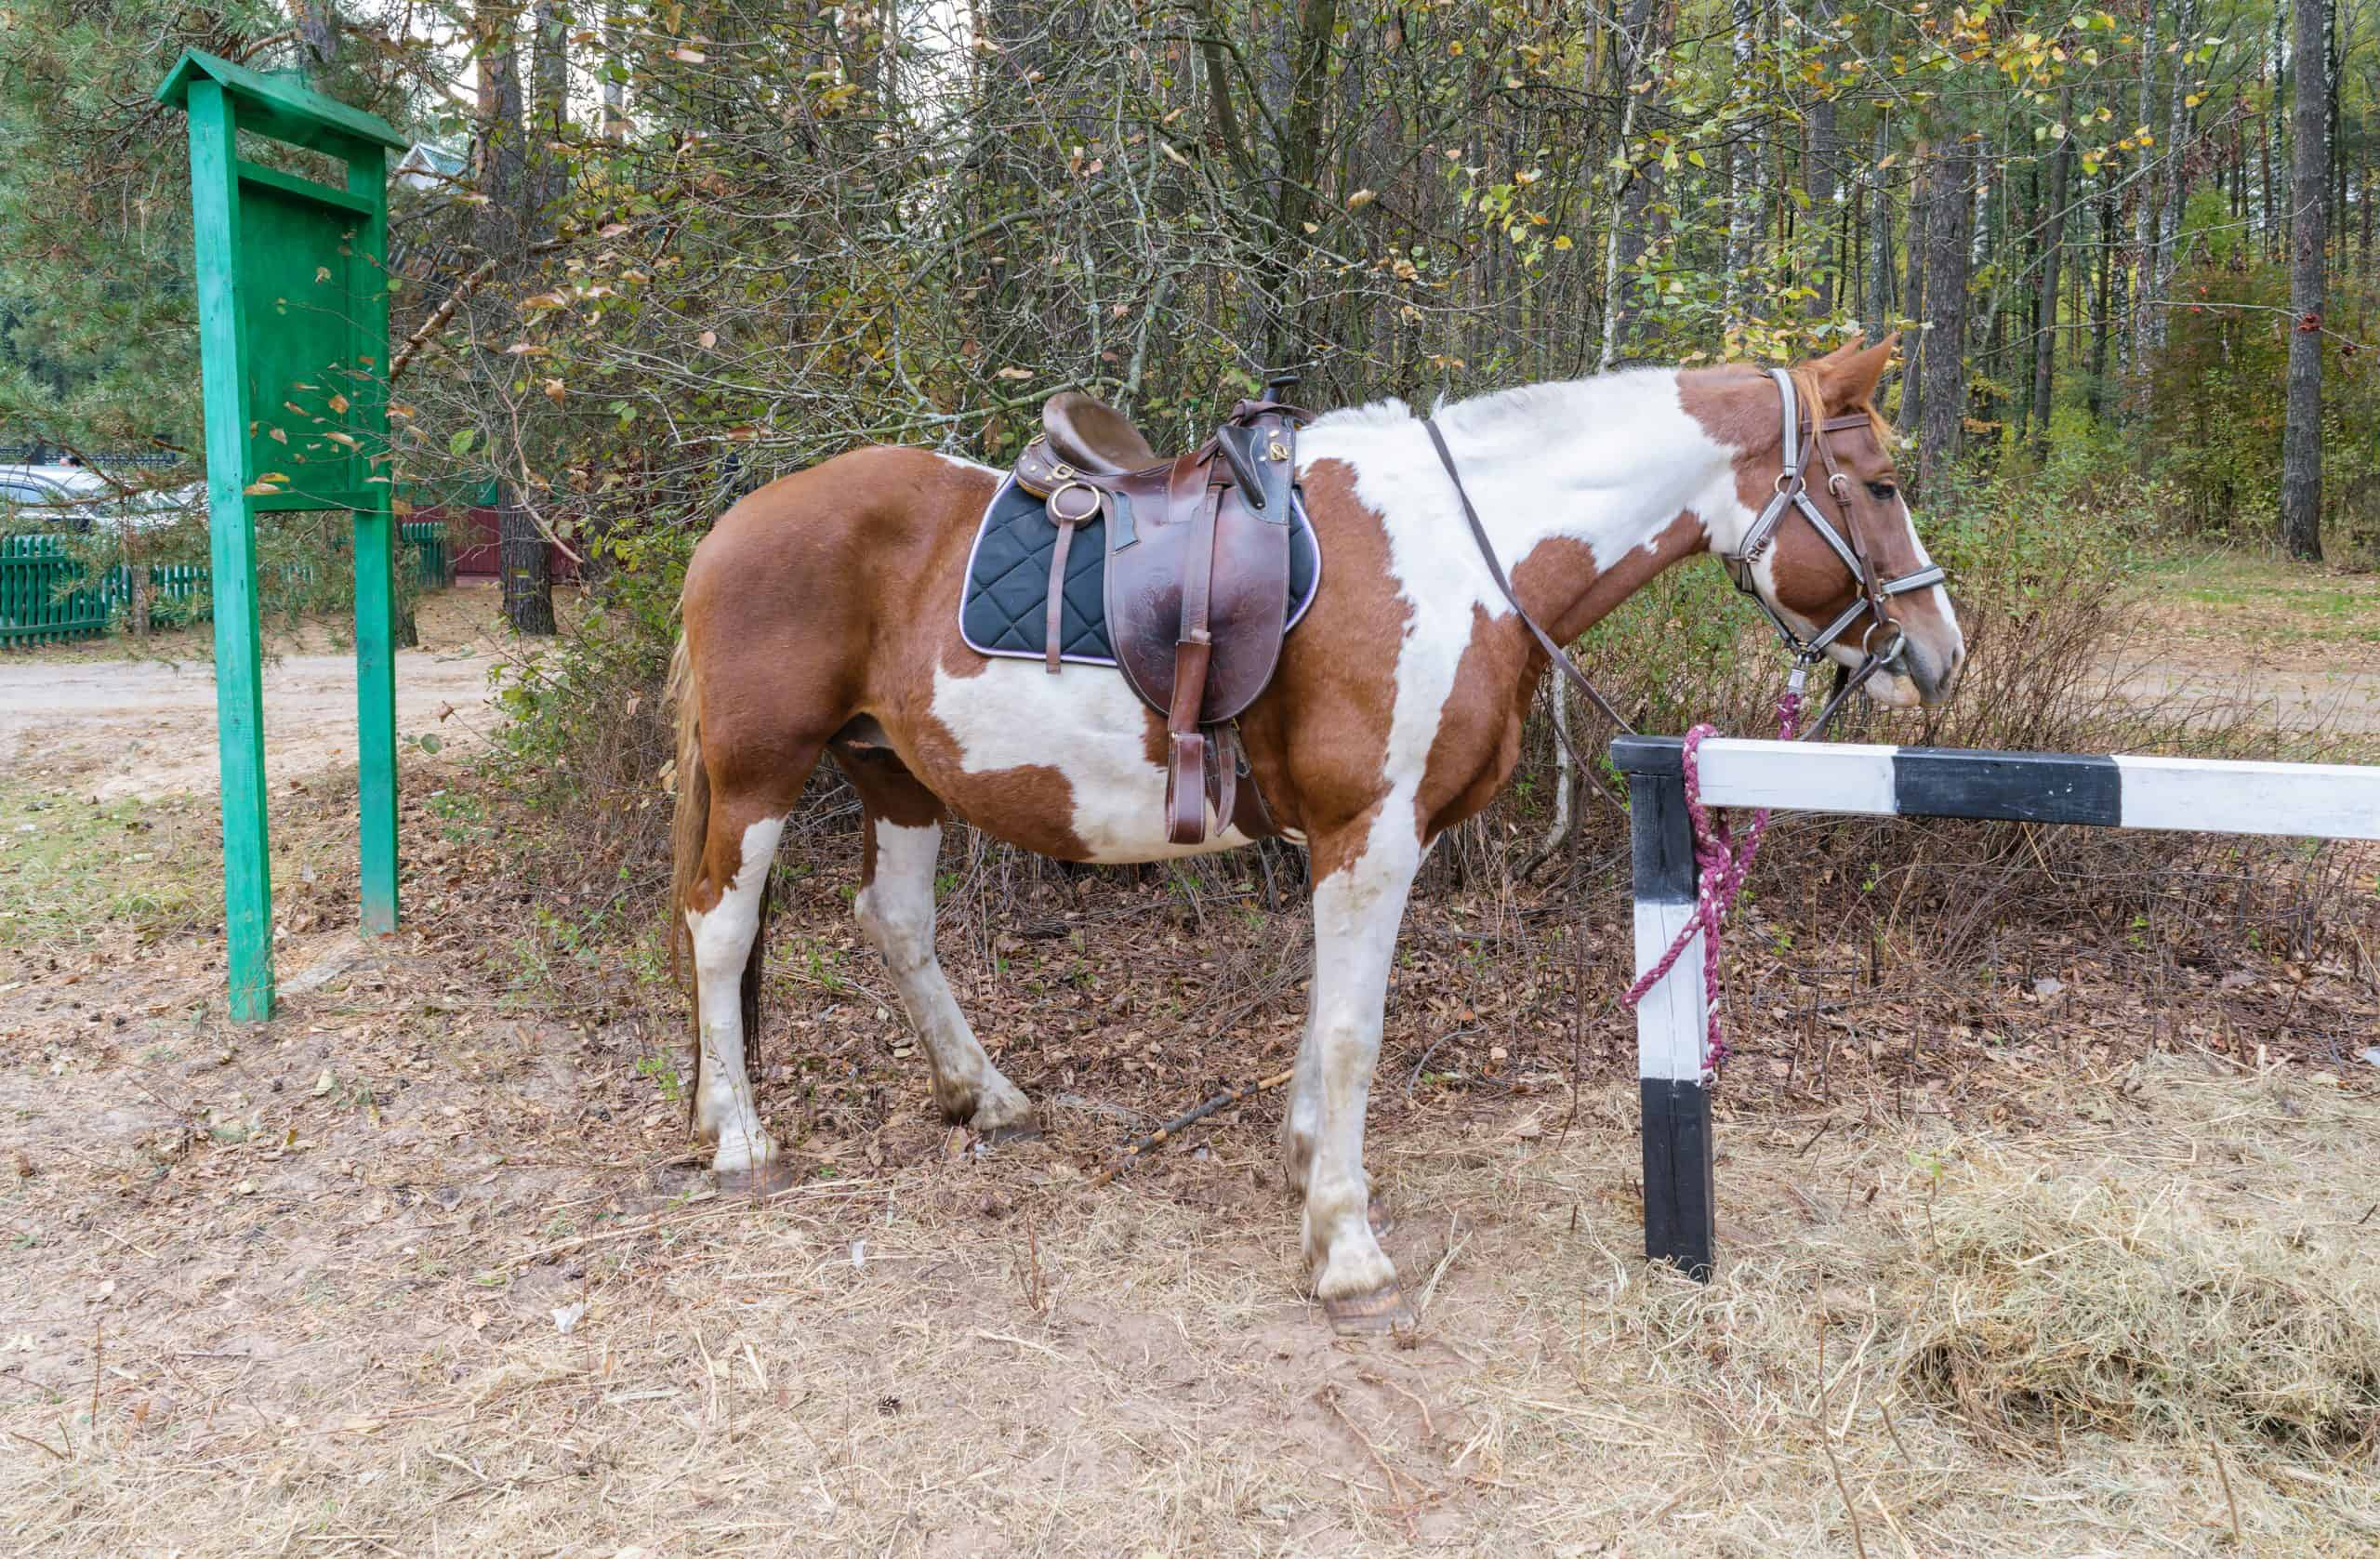 Red-white horse with a saddle and harness is on a leash